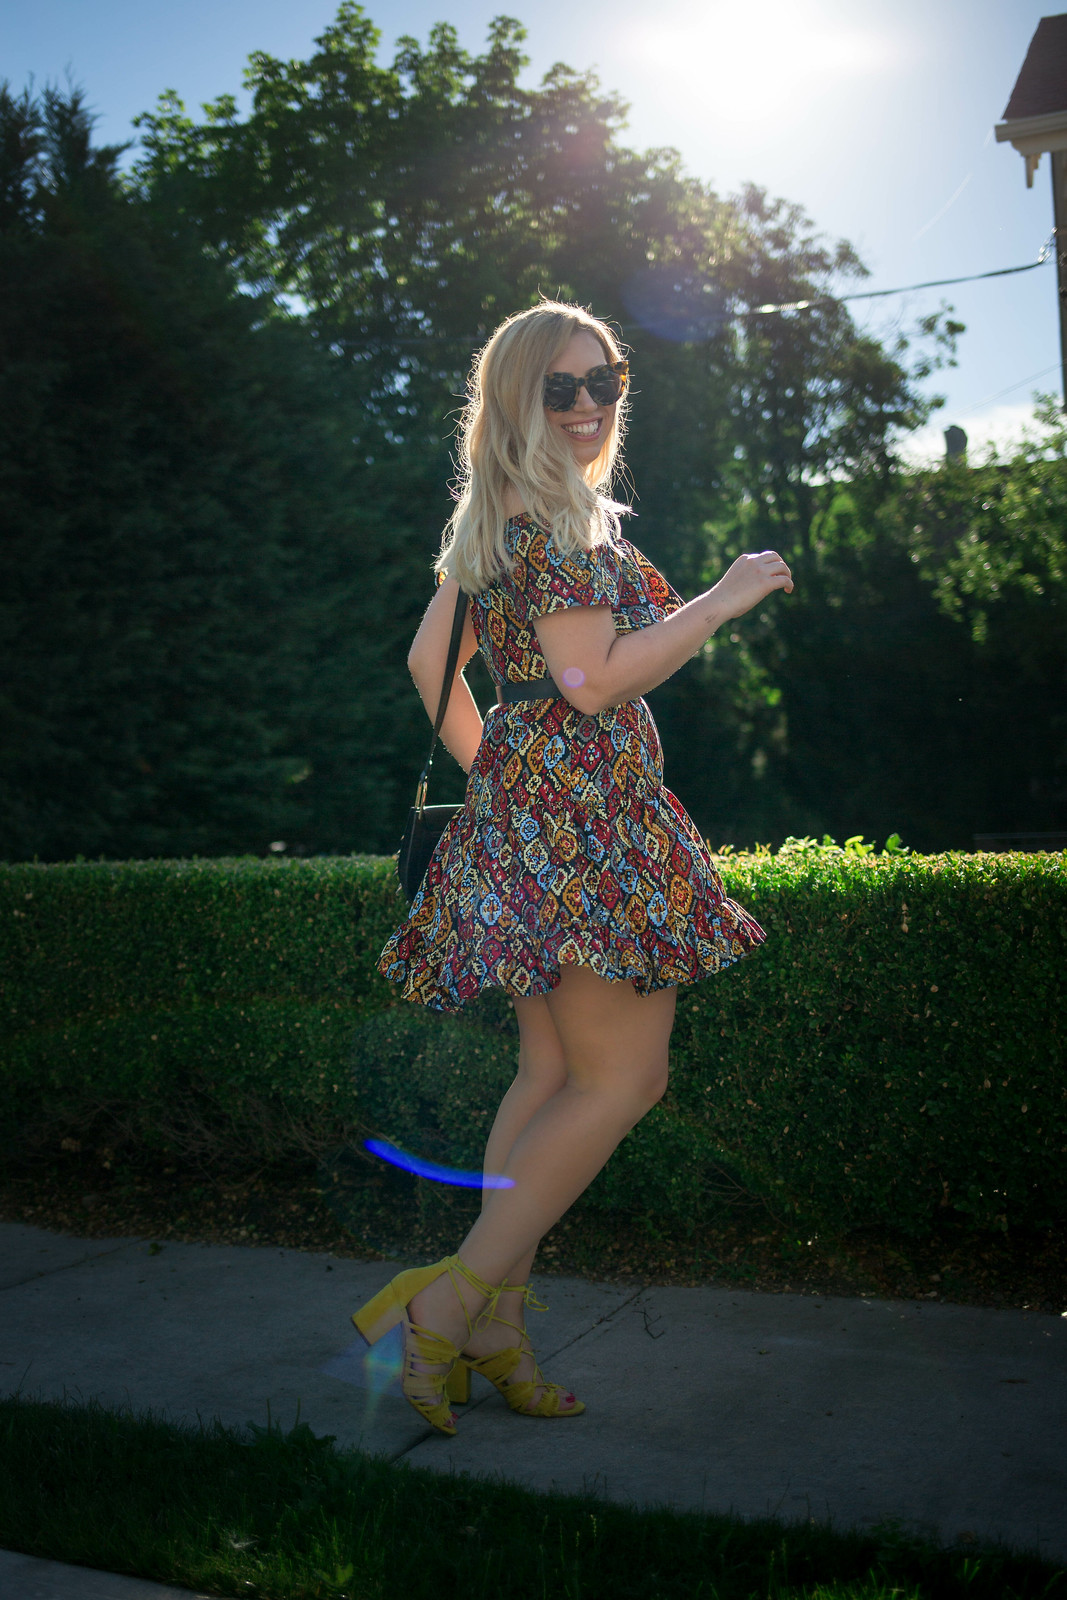 Why Printed Dresses are Better than Solids | Colorful Dress Twirling Pose Hastings on Hudson New York